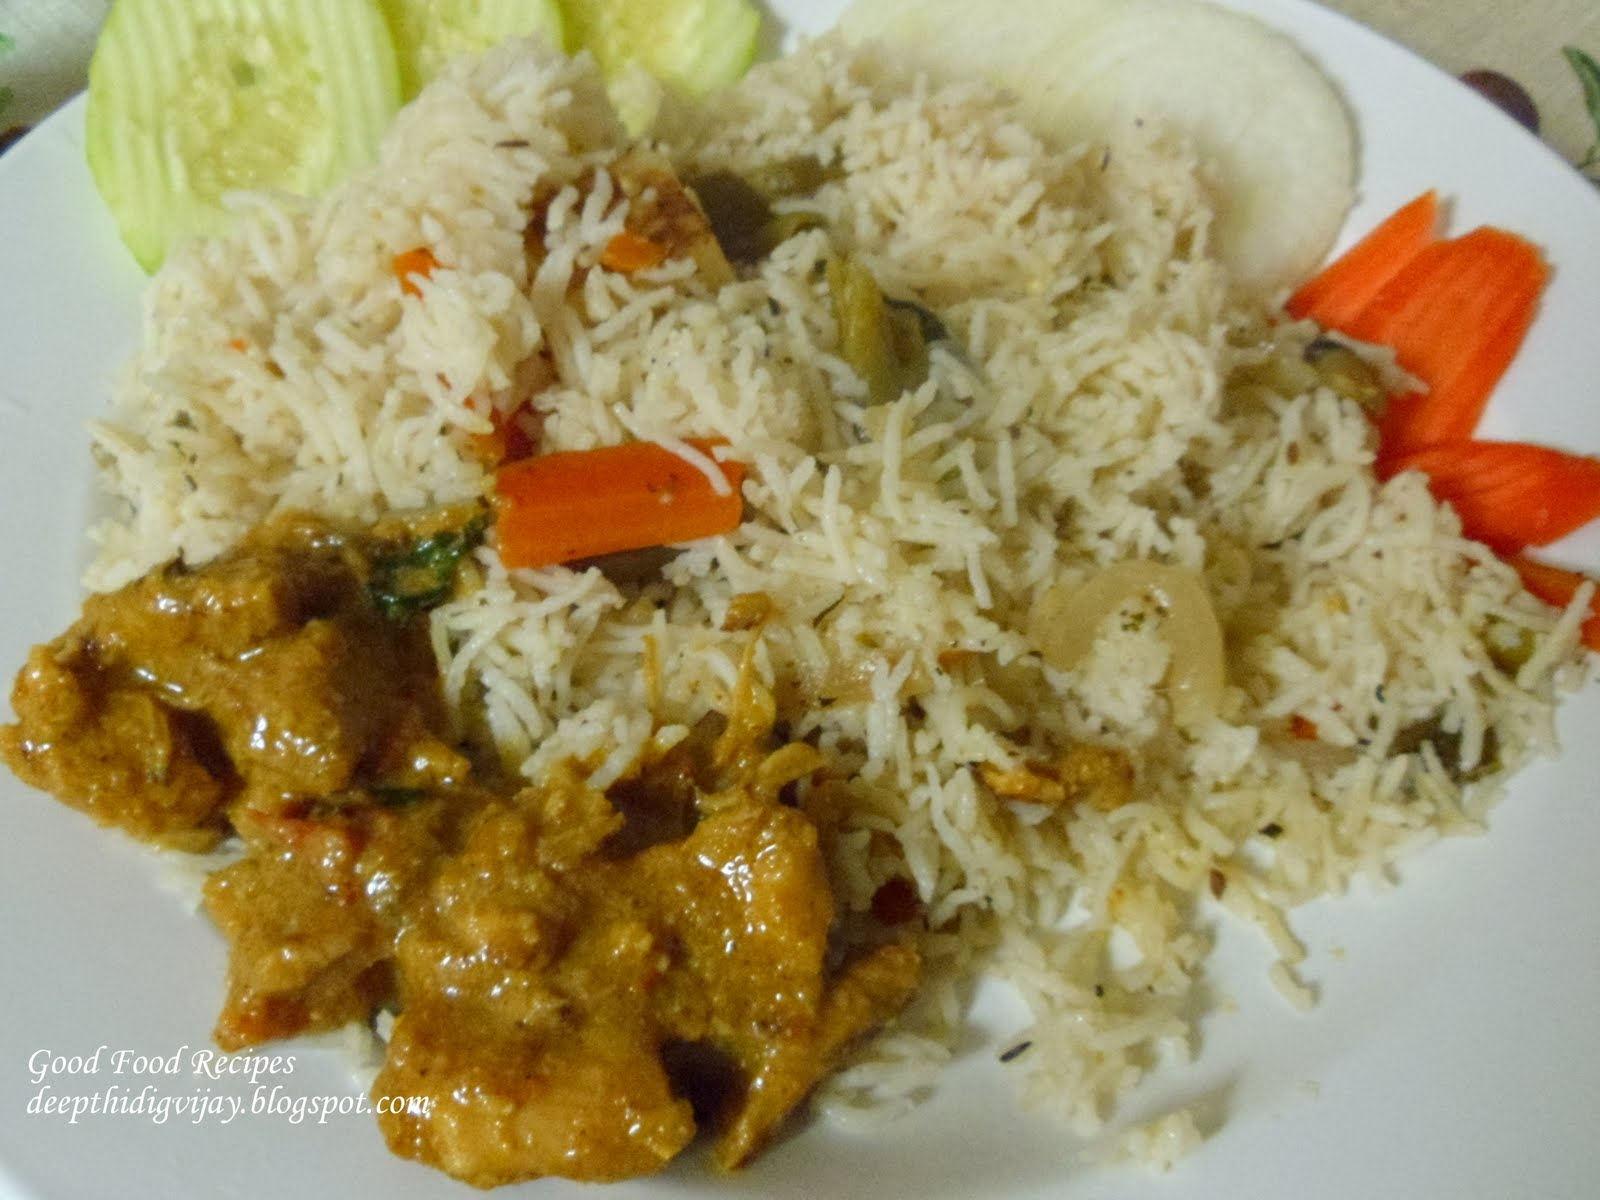 Good Food Recipes: Chicken- Coconut milk Curry